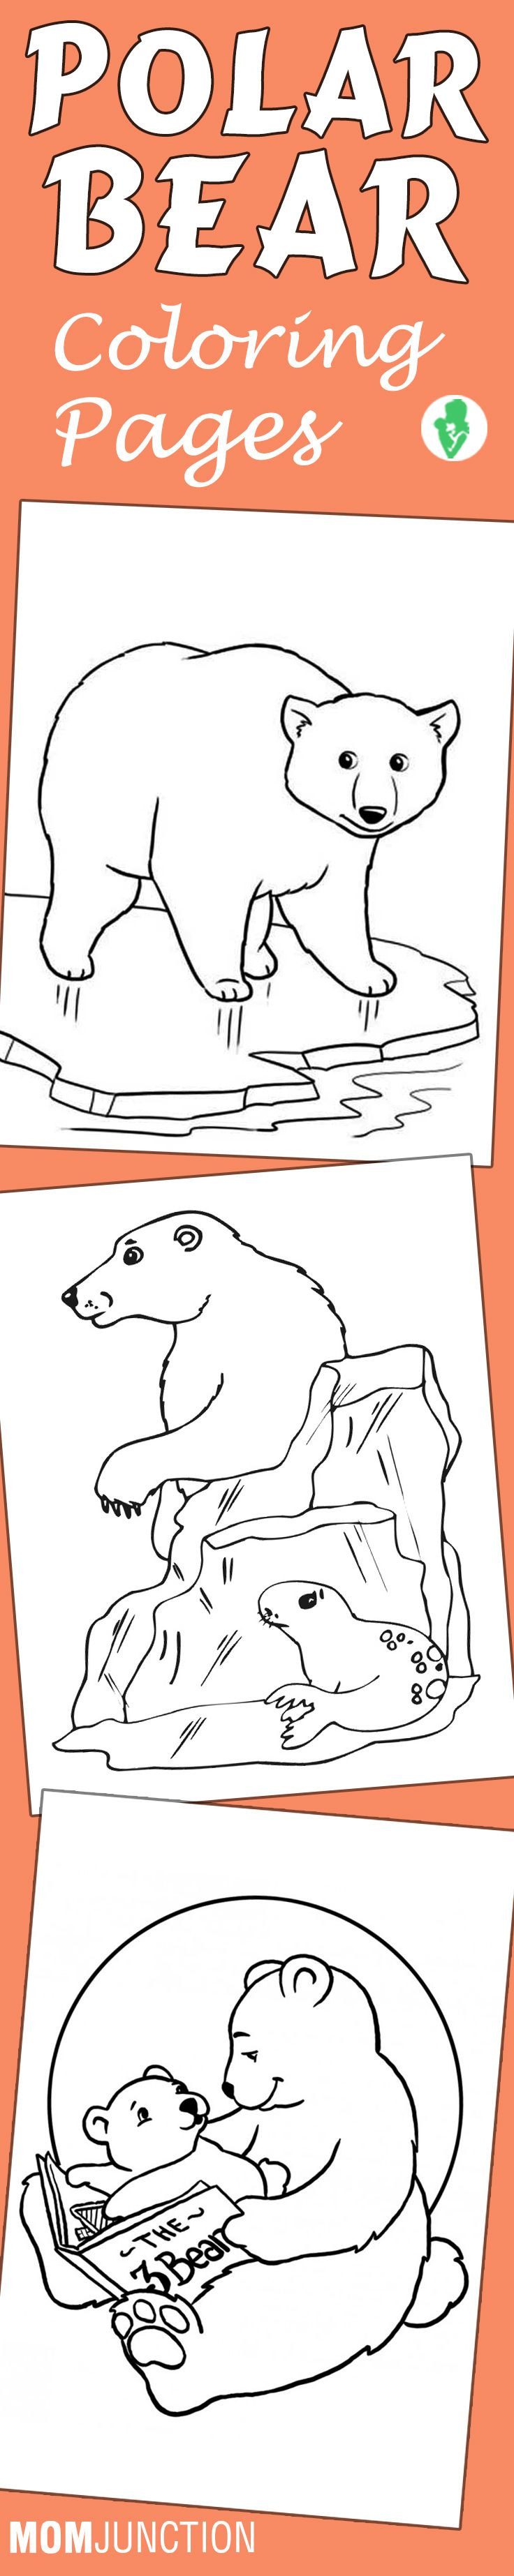 10 Cute Polar Bear Coloring Pages For Your Little Ones: These coloring pages will introduce your kid to the polar bear in its natural habitat. Also, make things interesting by providing snippets of information about bears to engage your child's imagination.